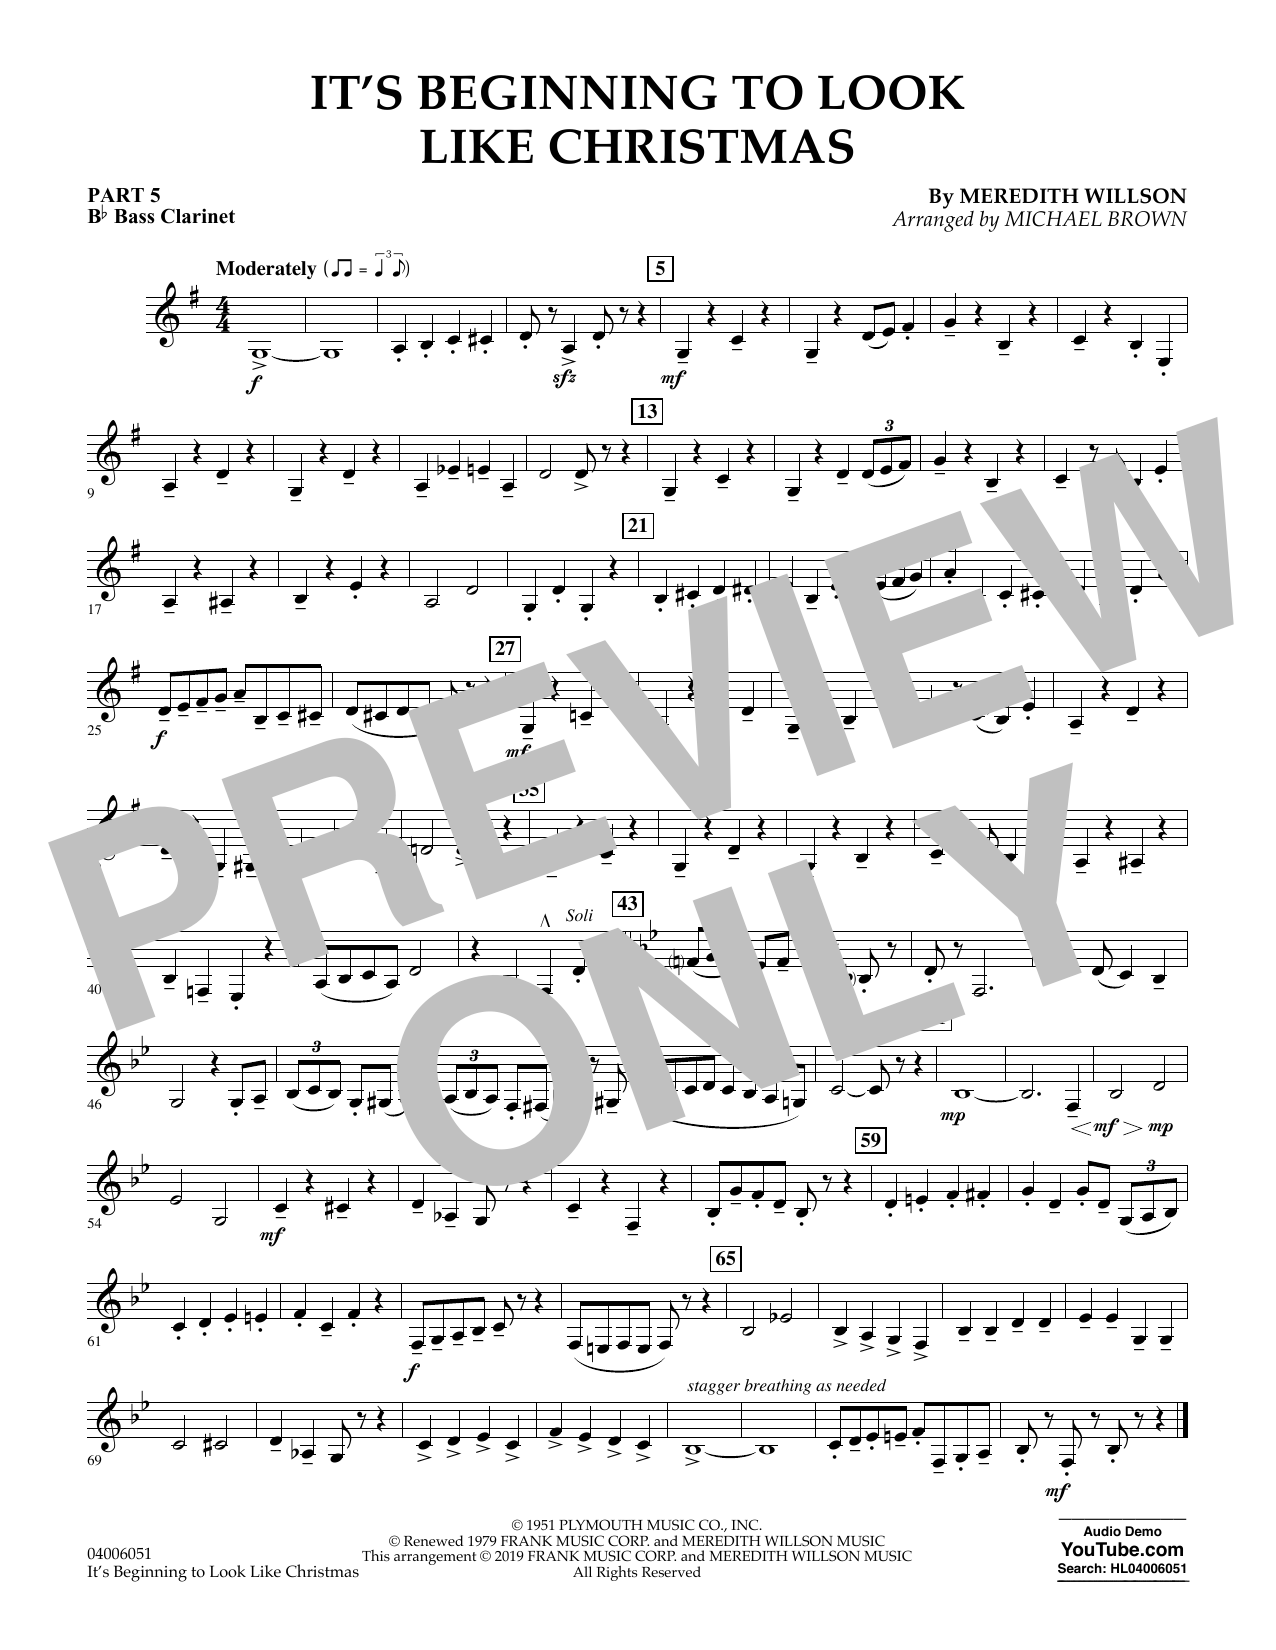 It's Beginning to Look Like Christmas (arr. Michael Brown) - Pt.5 - Bb Bass Clarinet (Concert Band: Flex-Band)